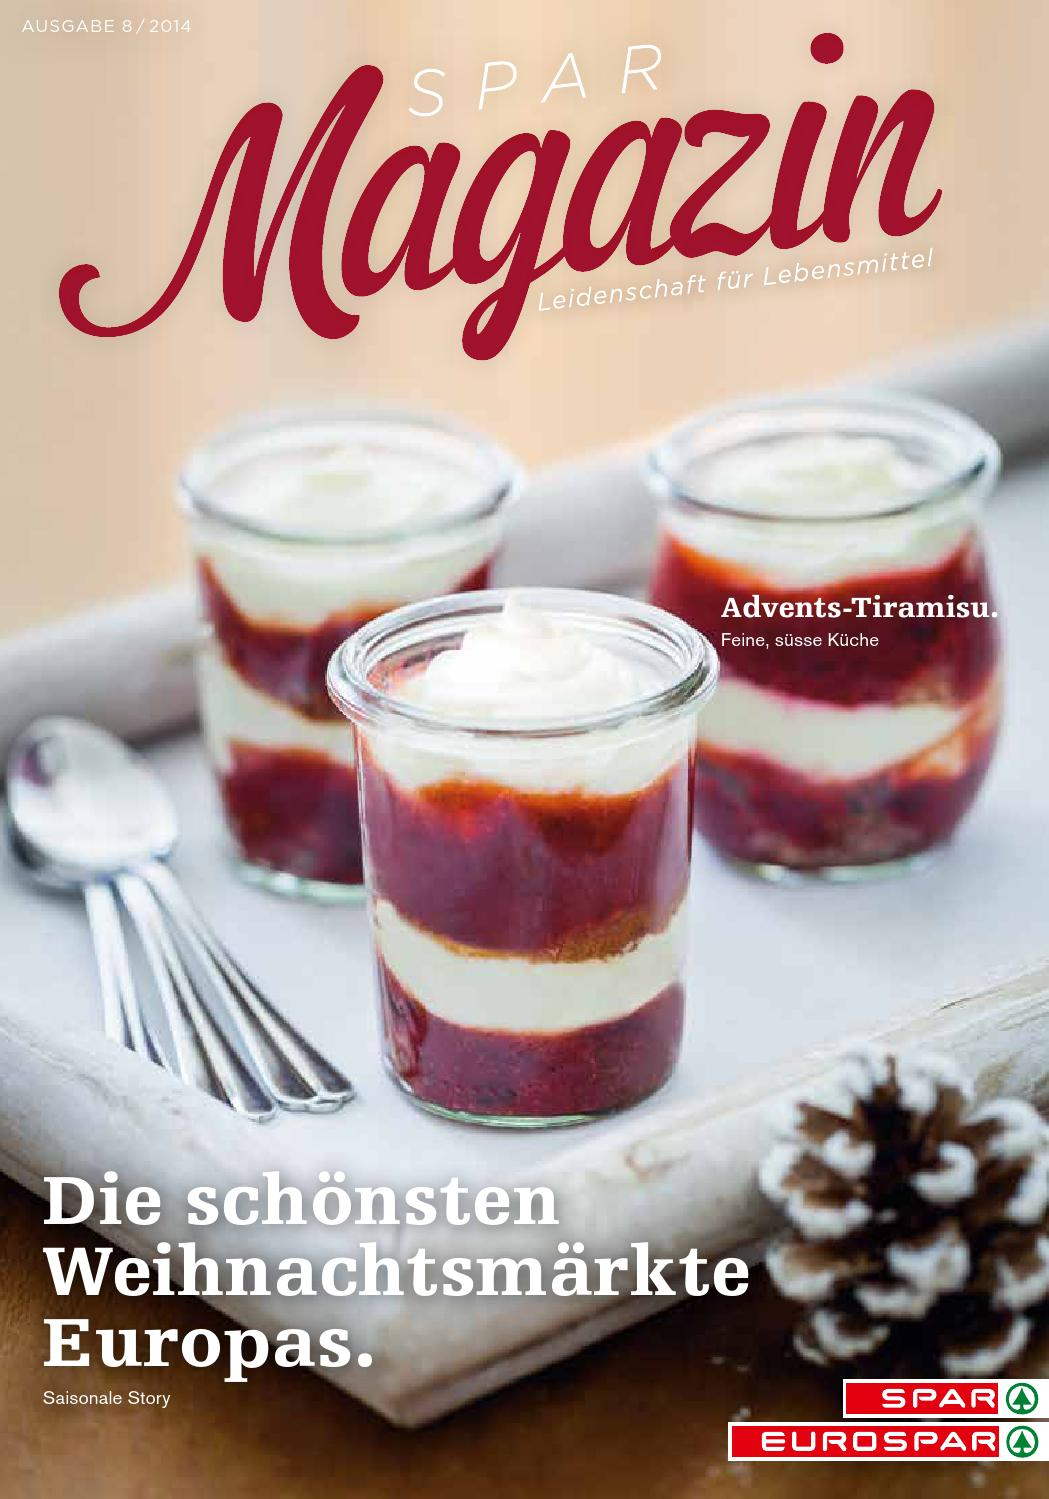 Feine Küche Spar Spar Magazin 8 By Inscript Gmbh Issuu